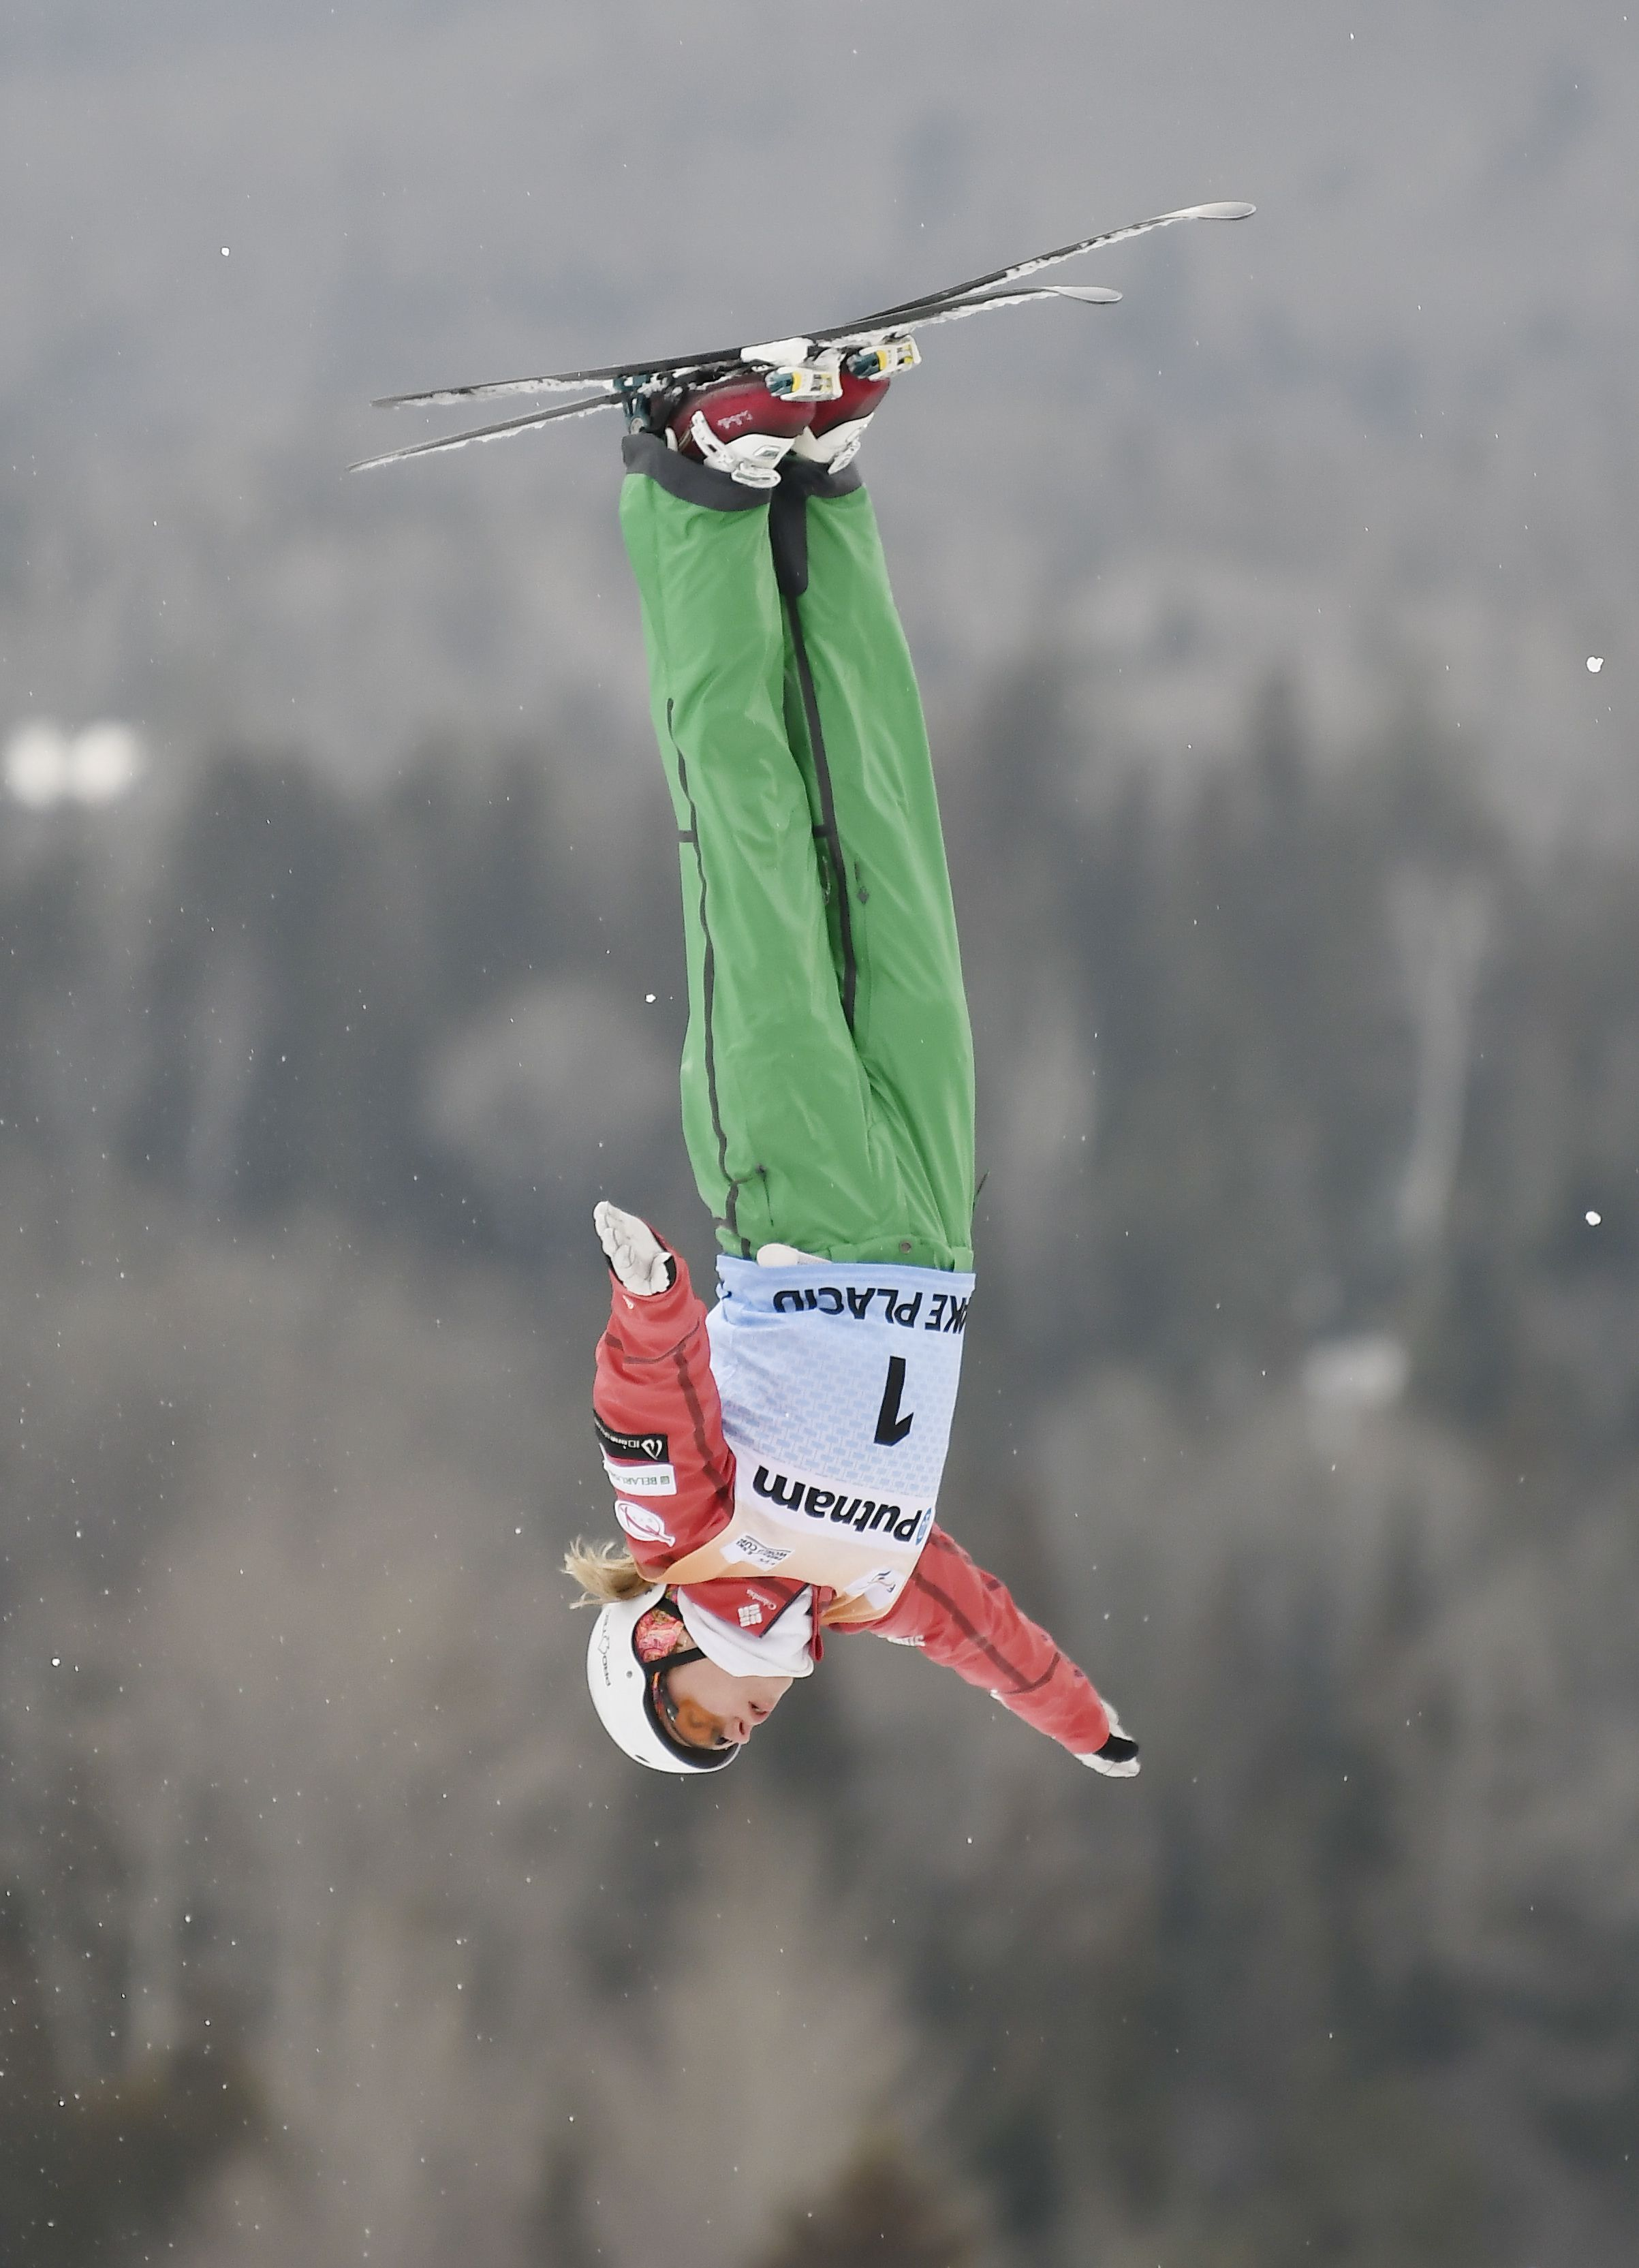 Hanna Huskova, of Belarus, competes in the women's World Cup freestyle skiing aerials in Lake Placid, N.Y., Saturday, Jan. 20, 2018. (AP Photo/Hans Pennink)